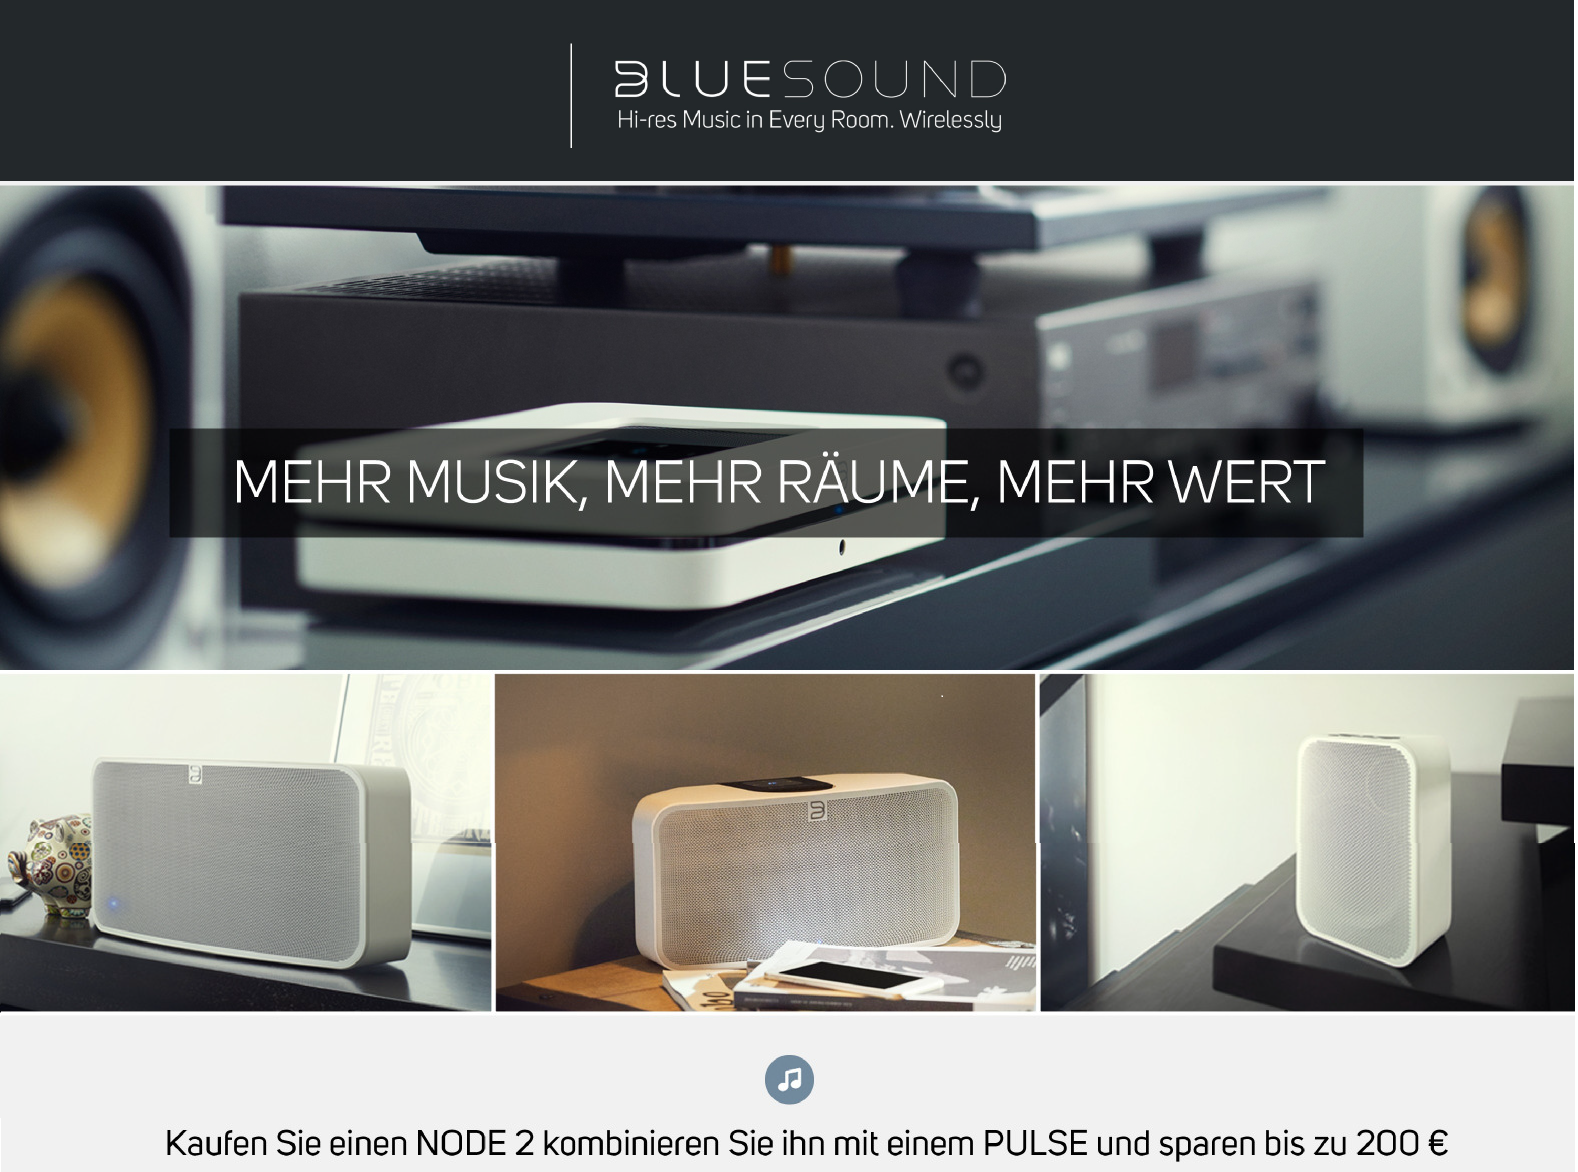 Bluesound_1